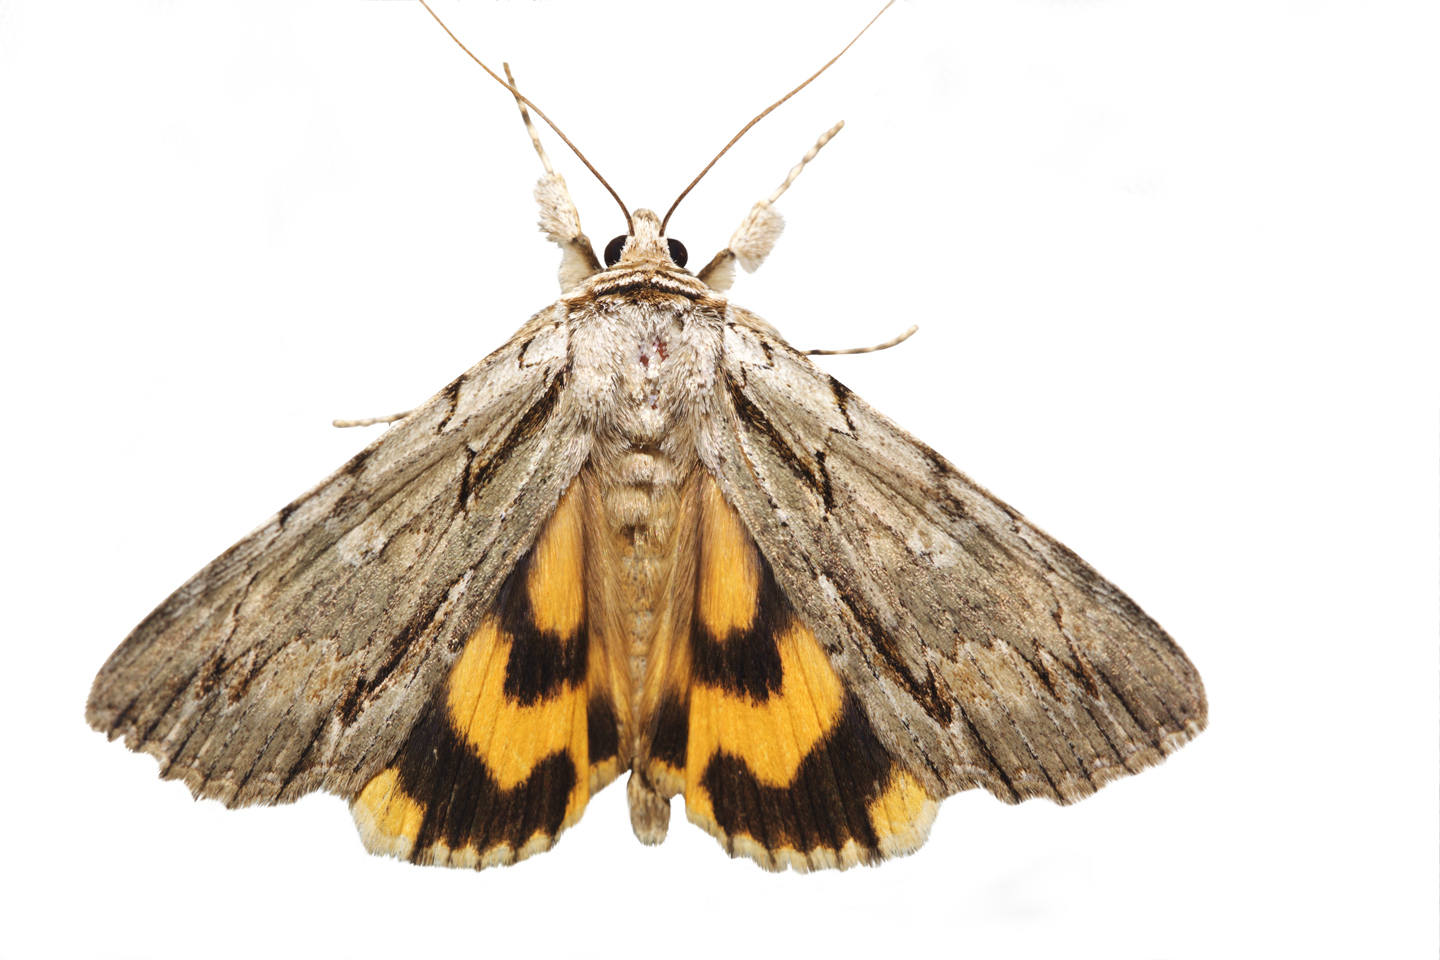 Clinton's Underwing